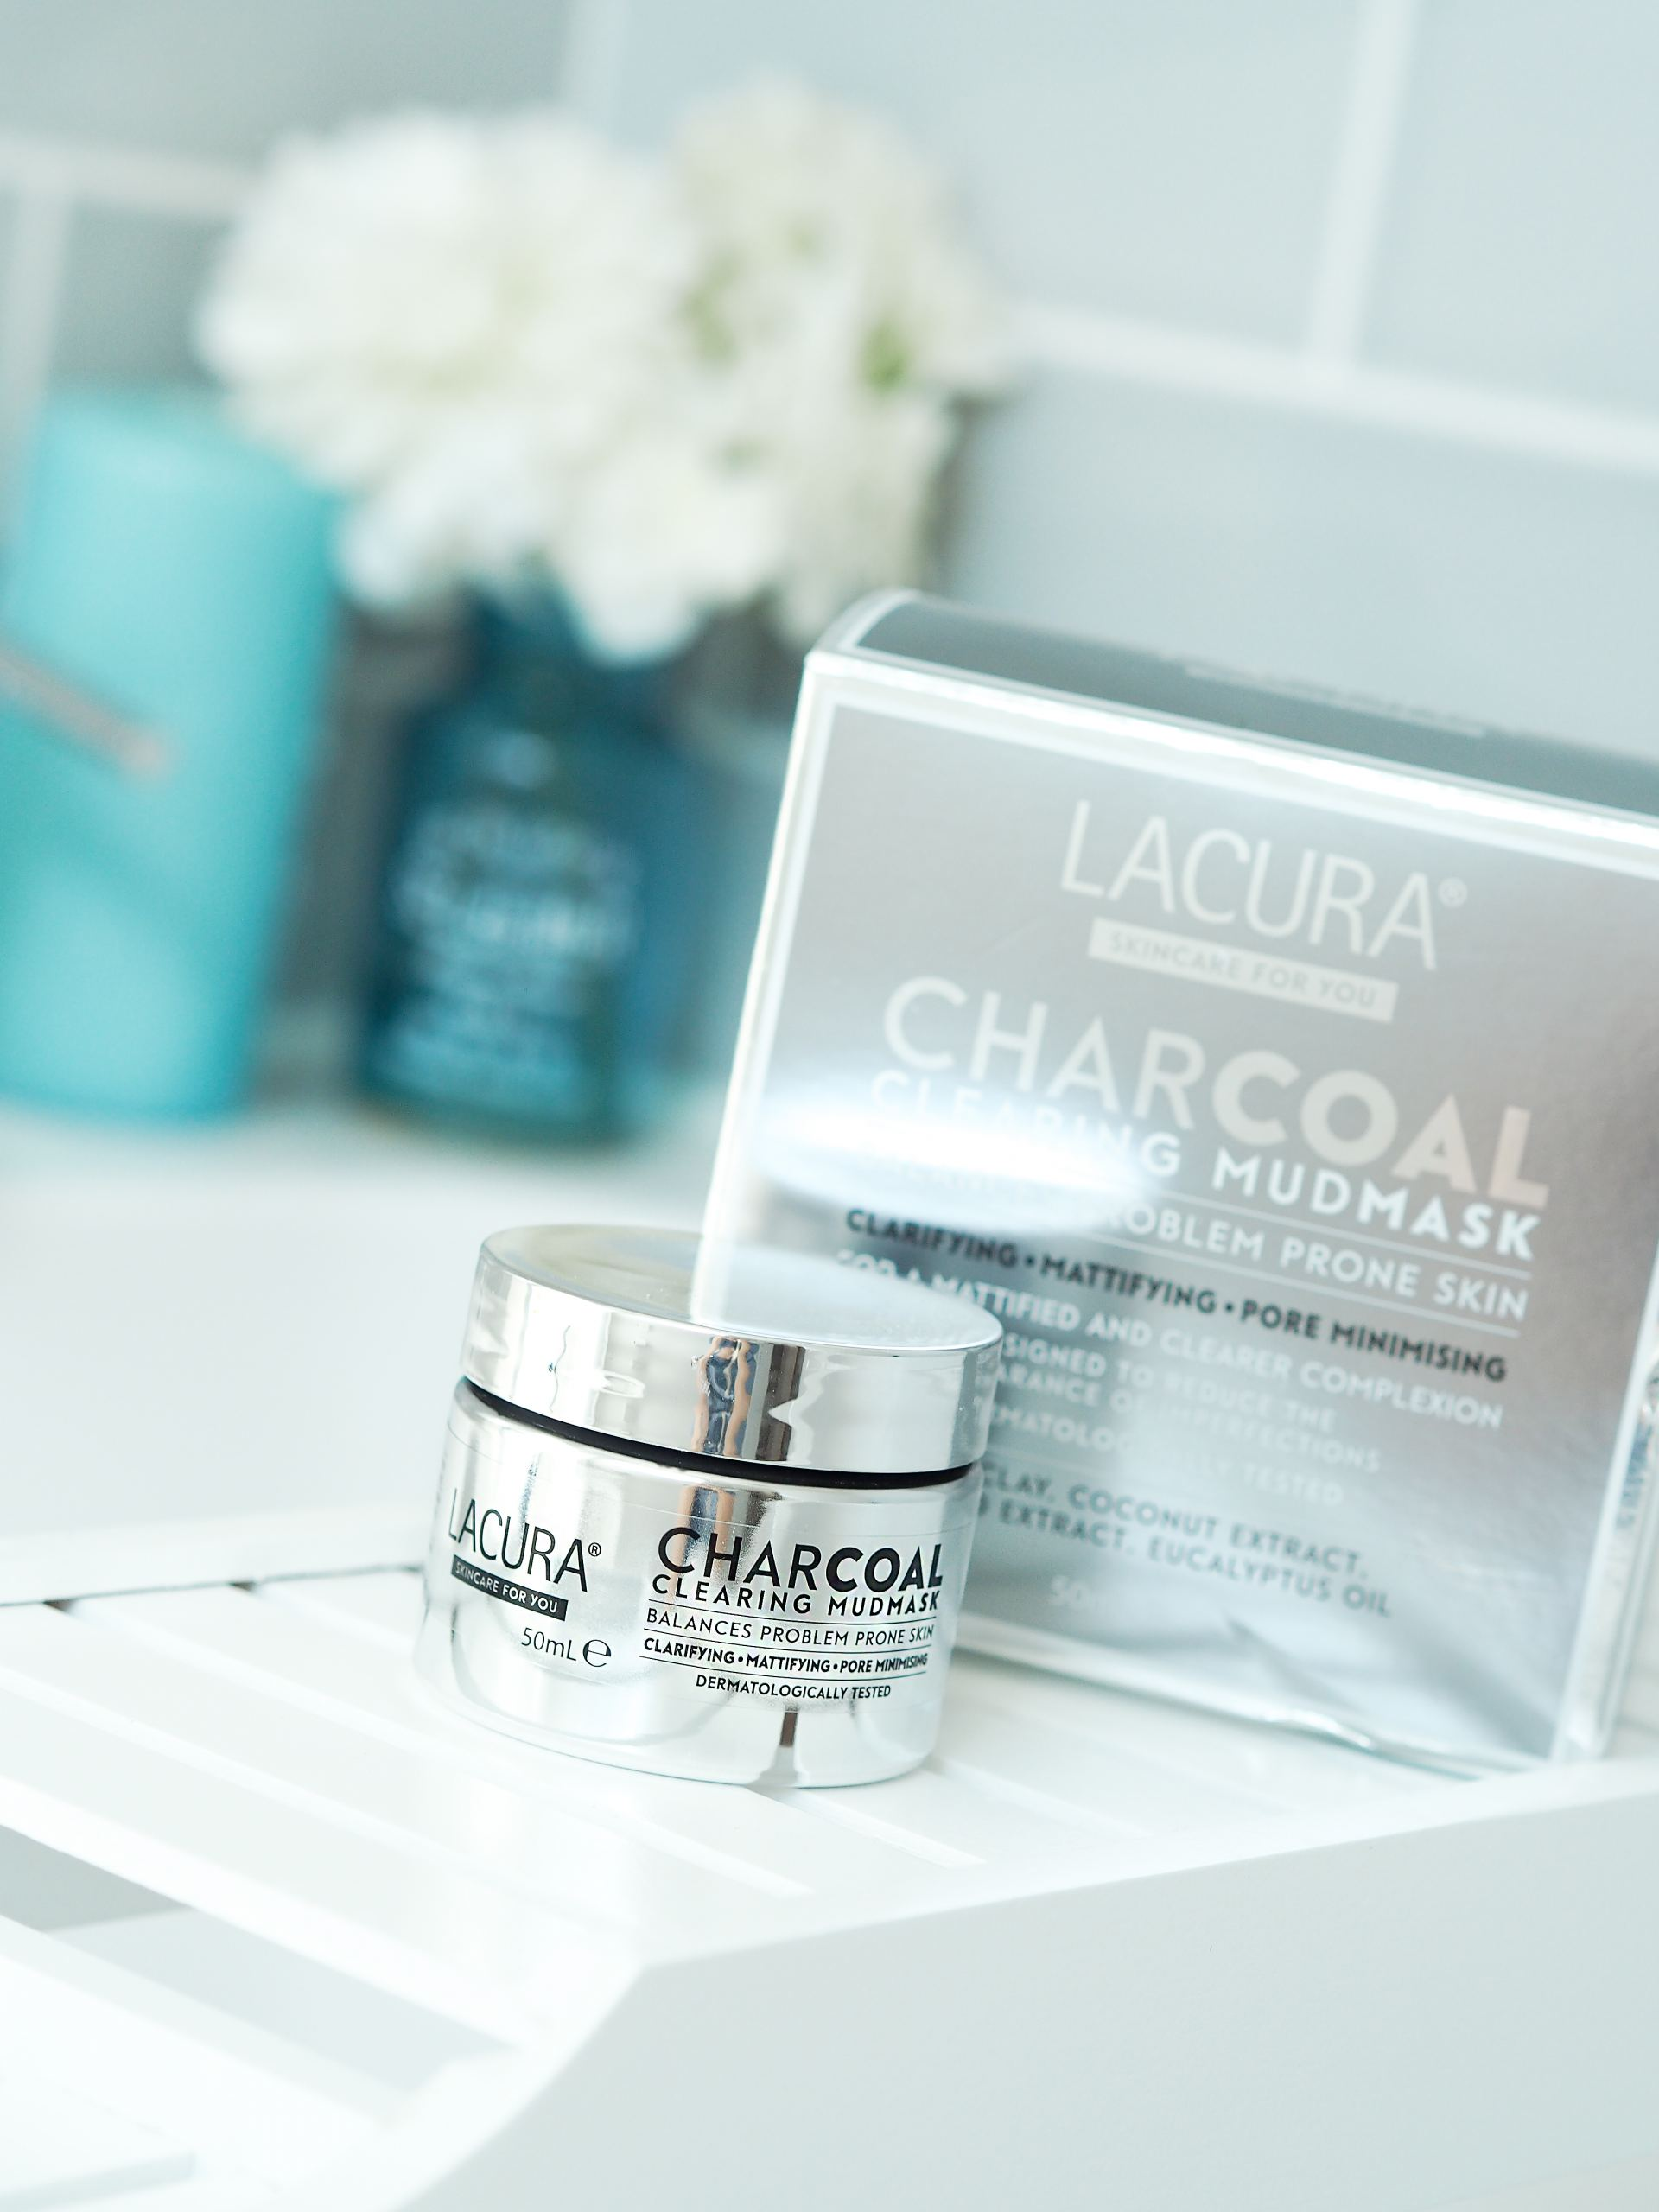 ALDI Lacura Charcoal Mud Mask review